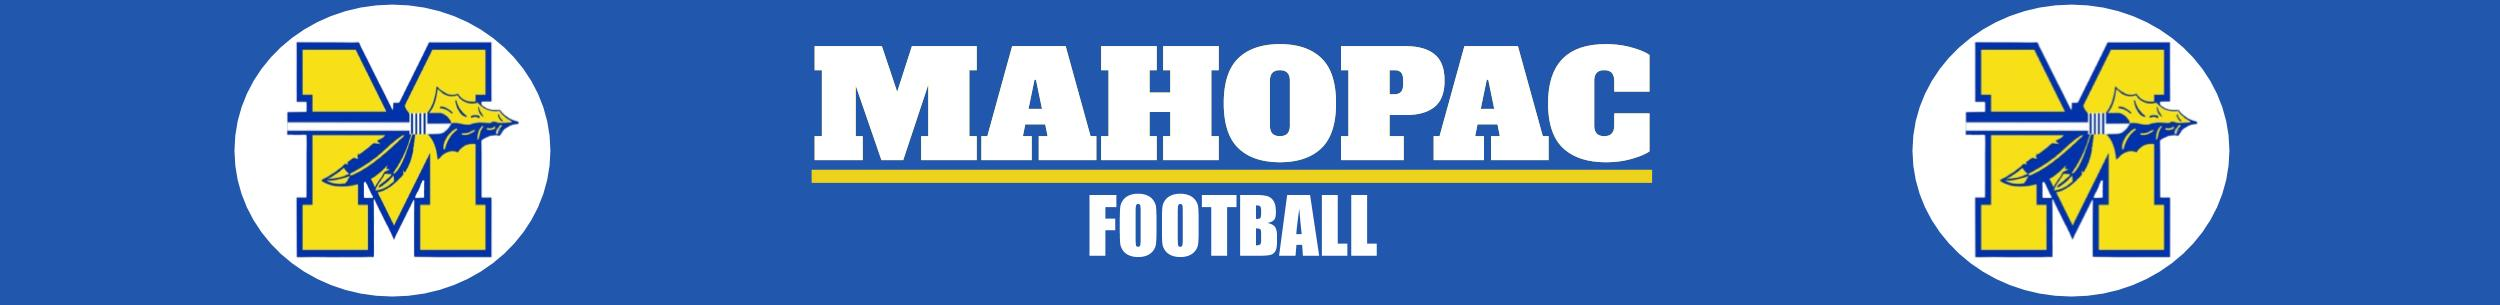 MAHOPAC FOOTBALL, Football, Goal, Field